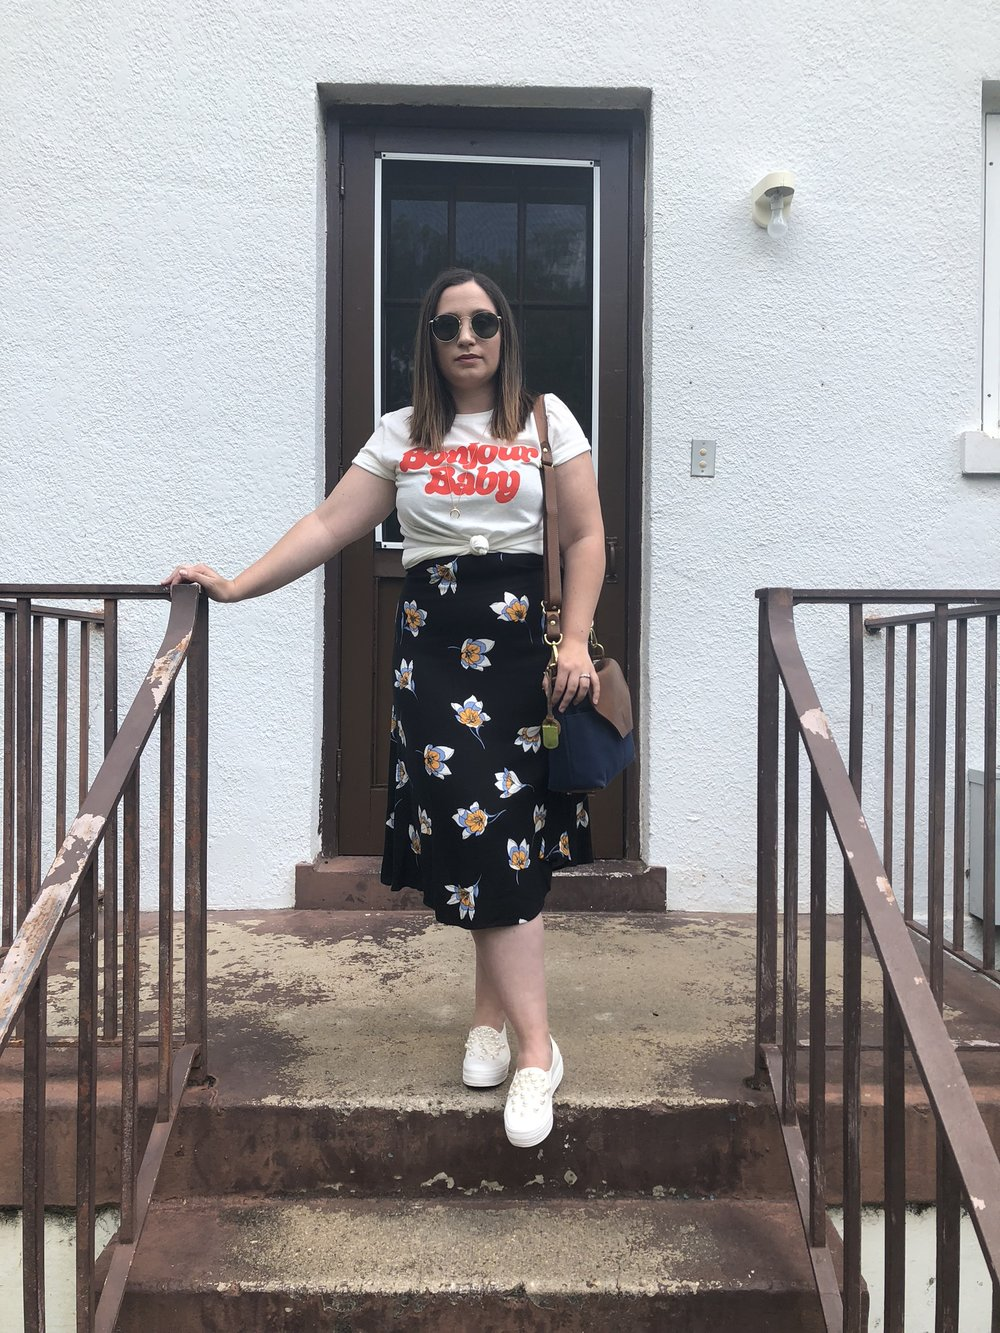 fashion blogger outfit, graphic t-shirt outfit idea, graphic tee layered with skirt, graphic tee layered over dress